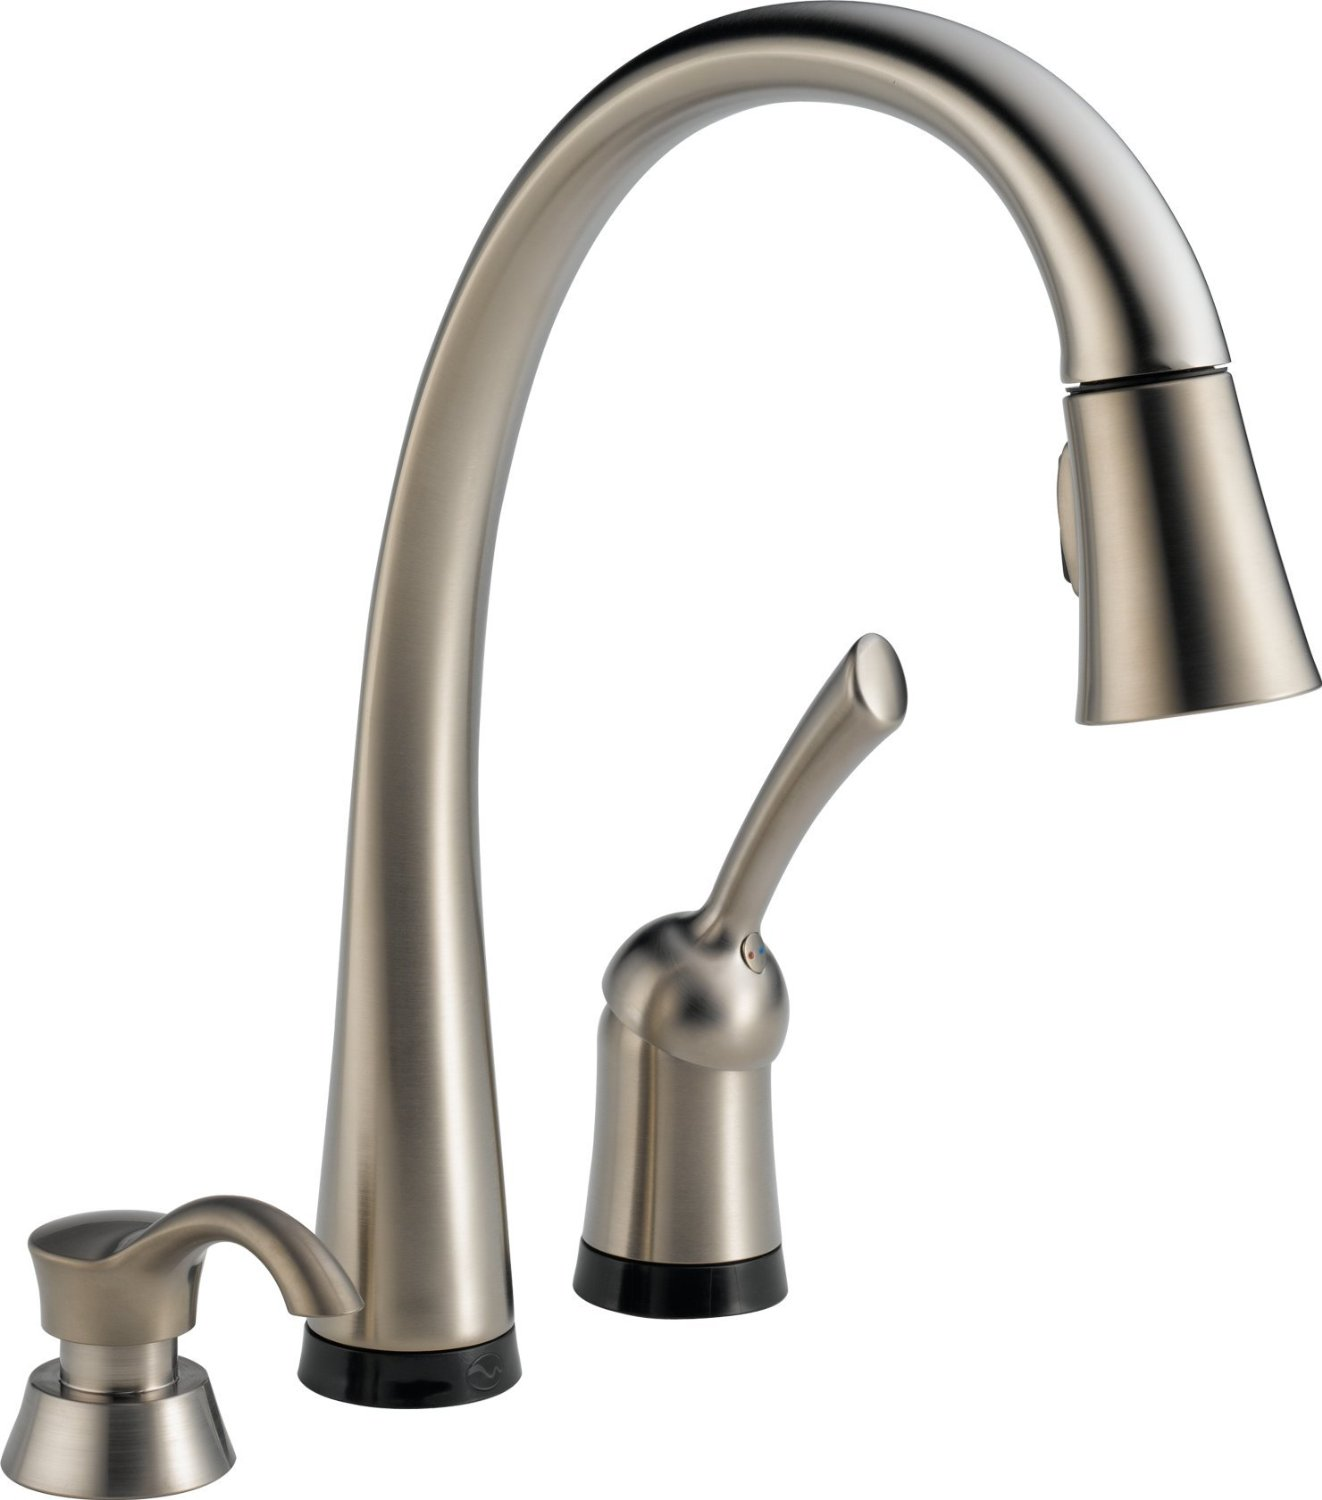 Delta 980T-SSSD-DST kitchen faucet Review | Check Discounts